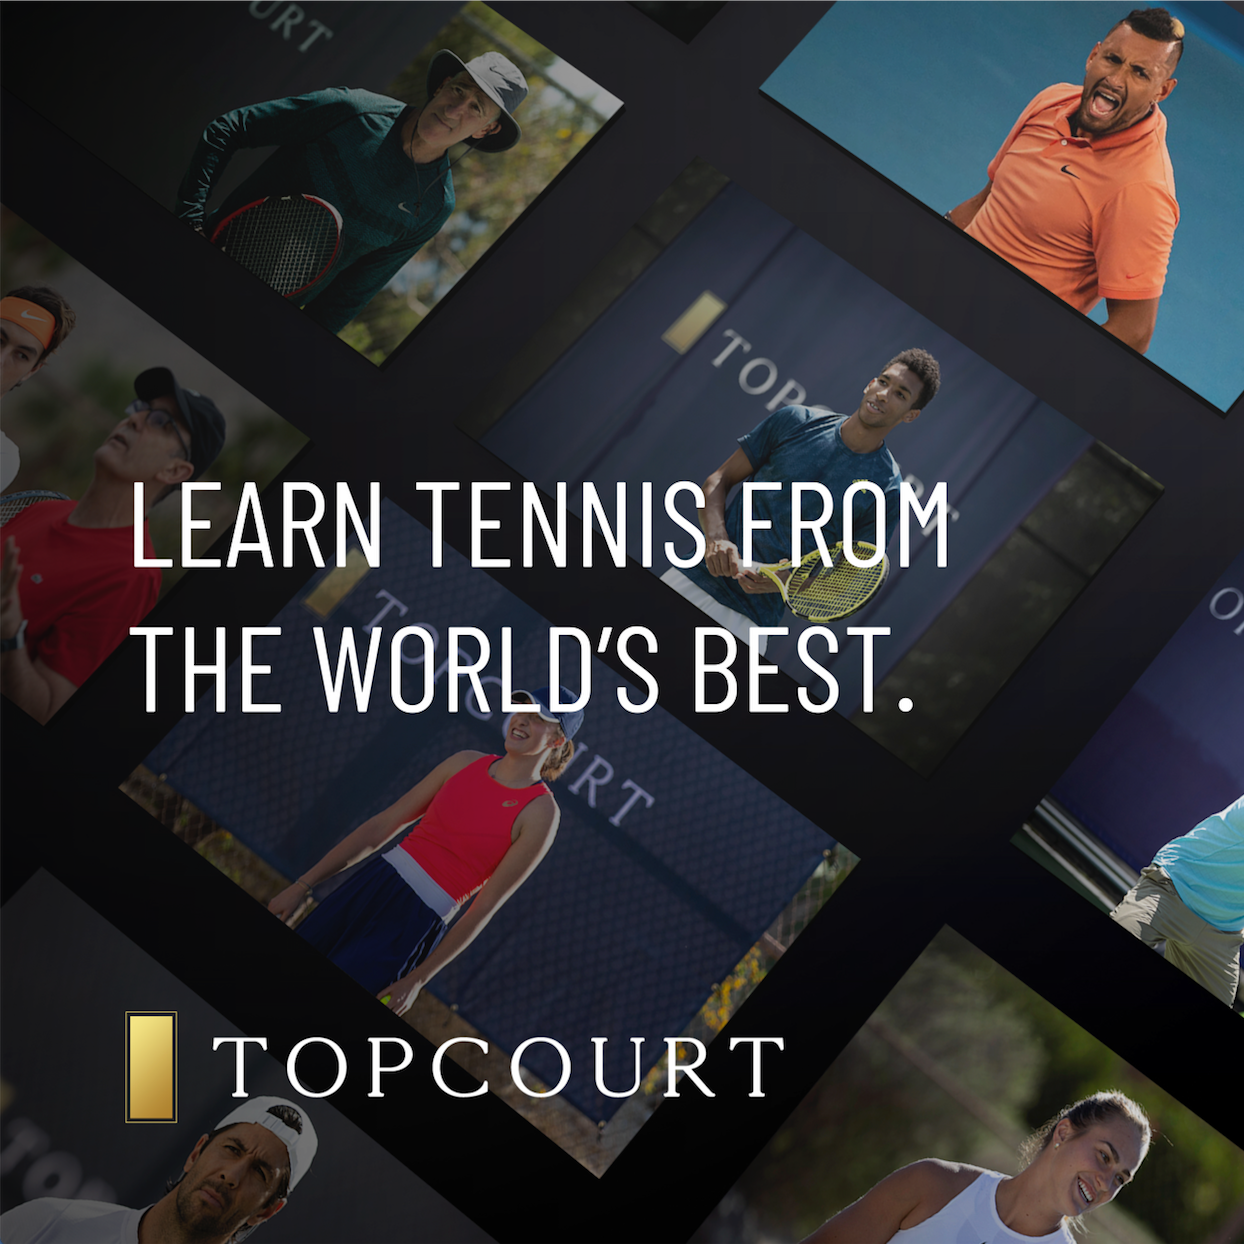 Learn Tennis From The World's Best